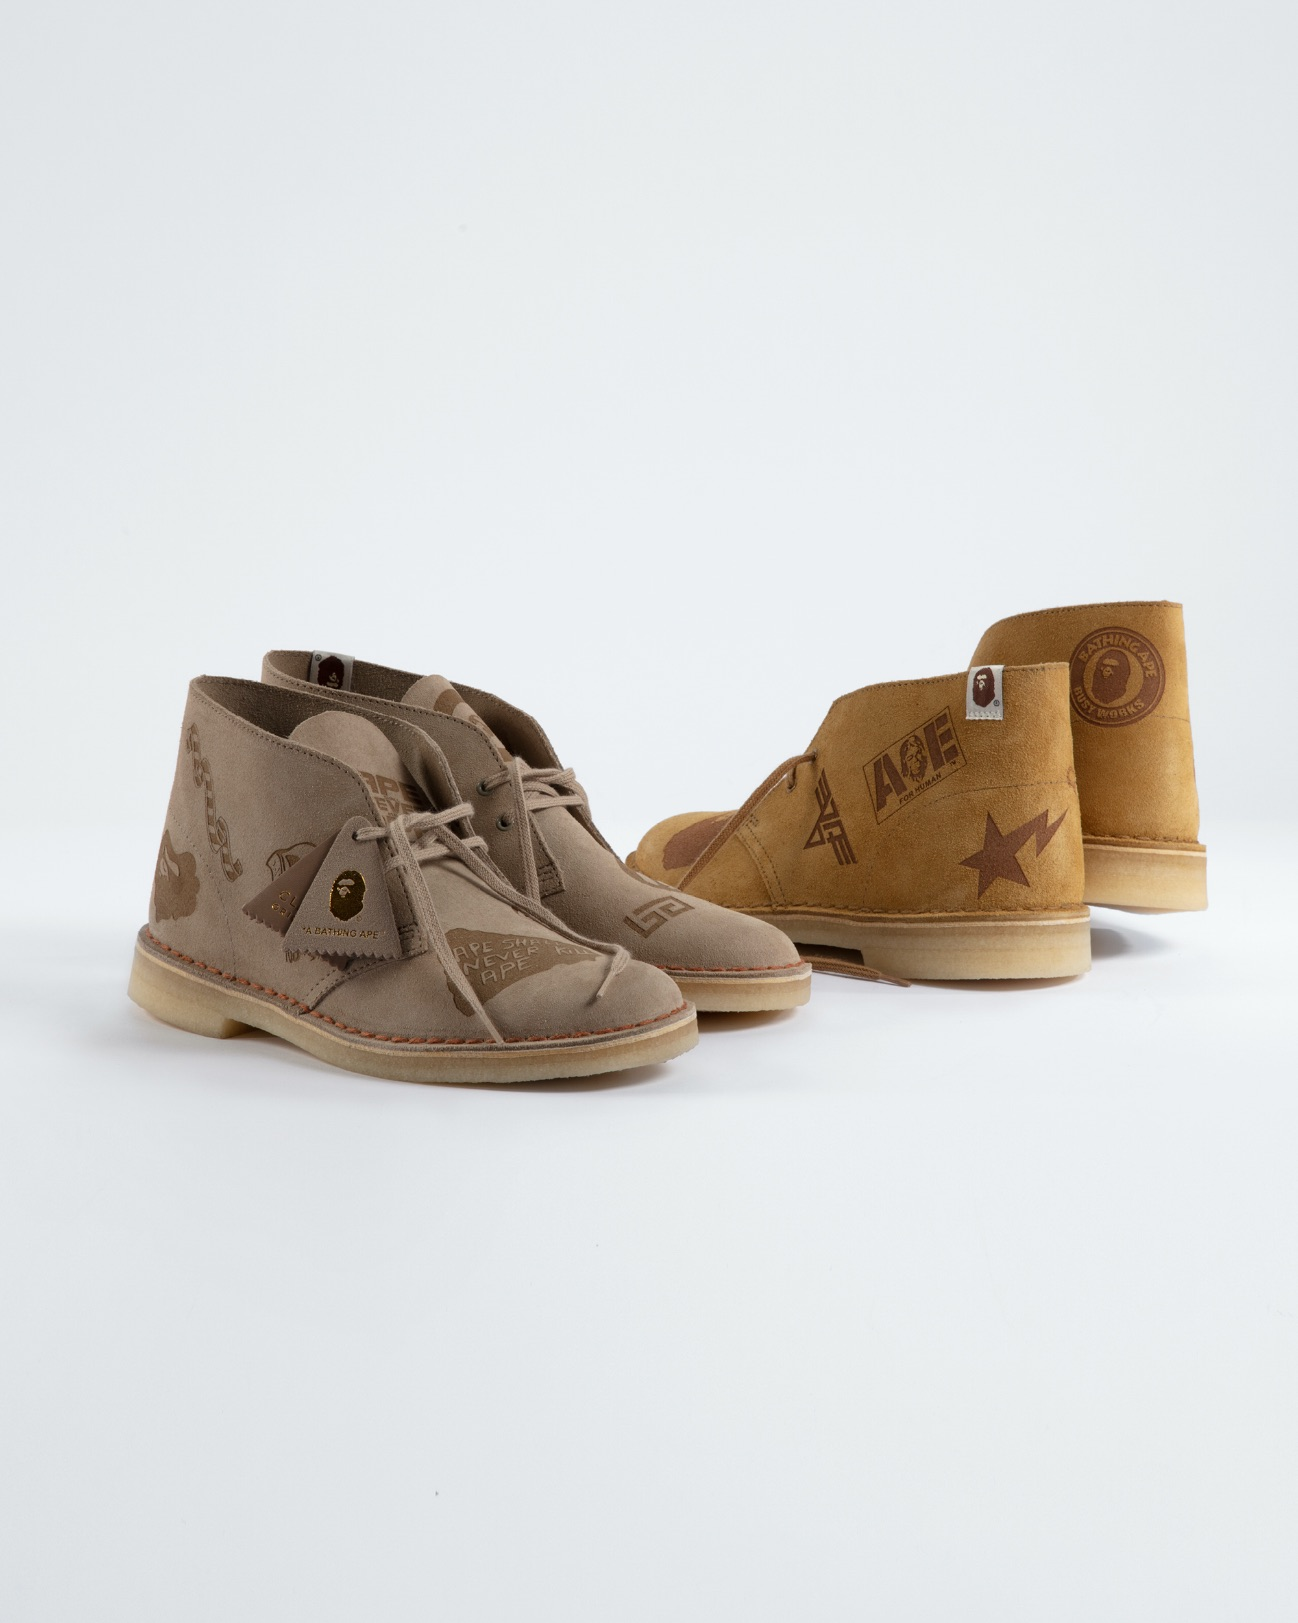 a-bathing-ape-clarks-originals%e3%83%99%e3%82%a4%e3%83%97-bape6